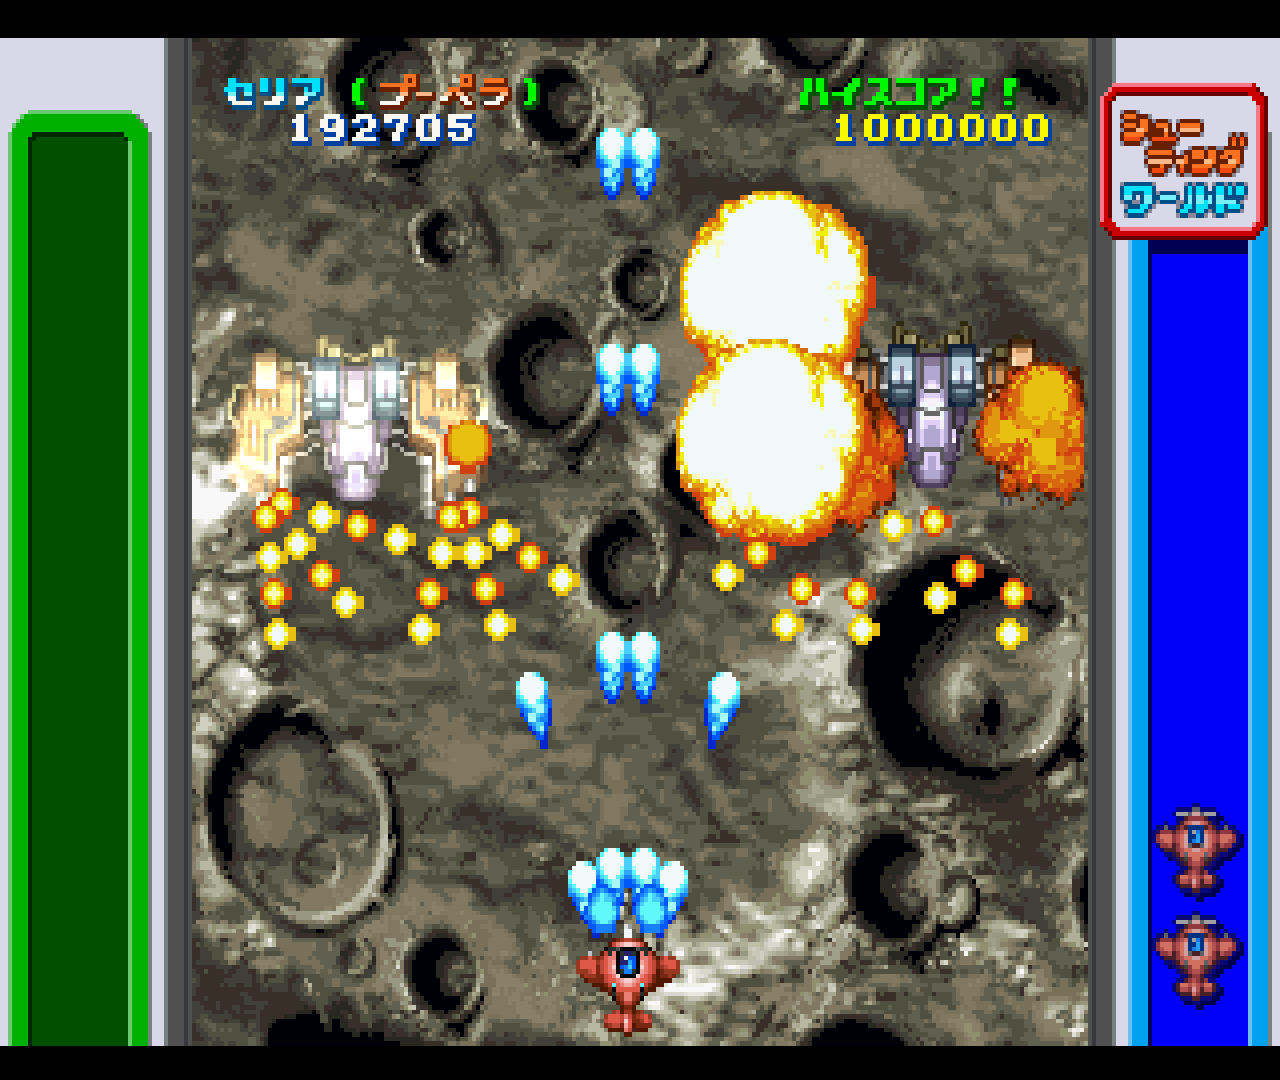 Figure 9 - These are just two enemies; imagine an average of 5 to 10 on the screen